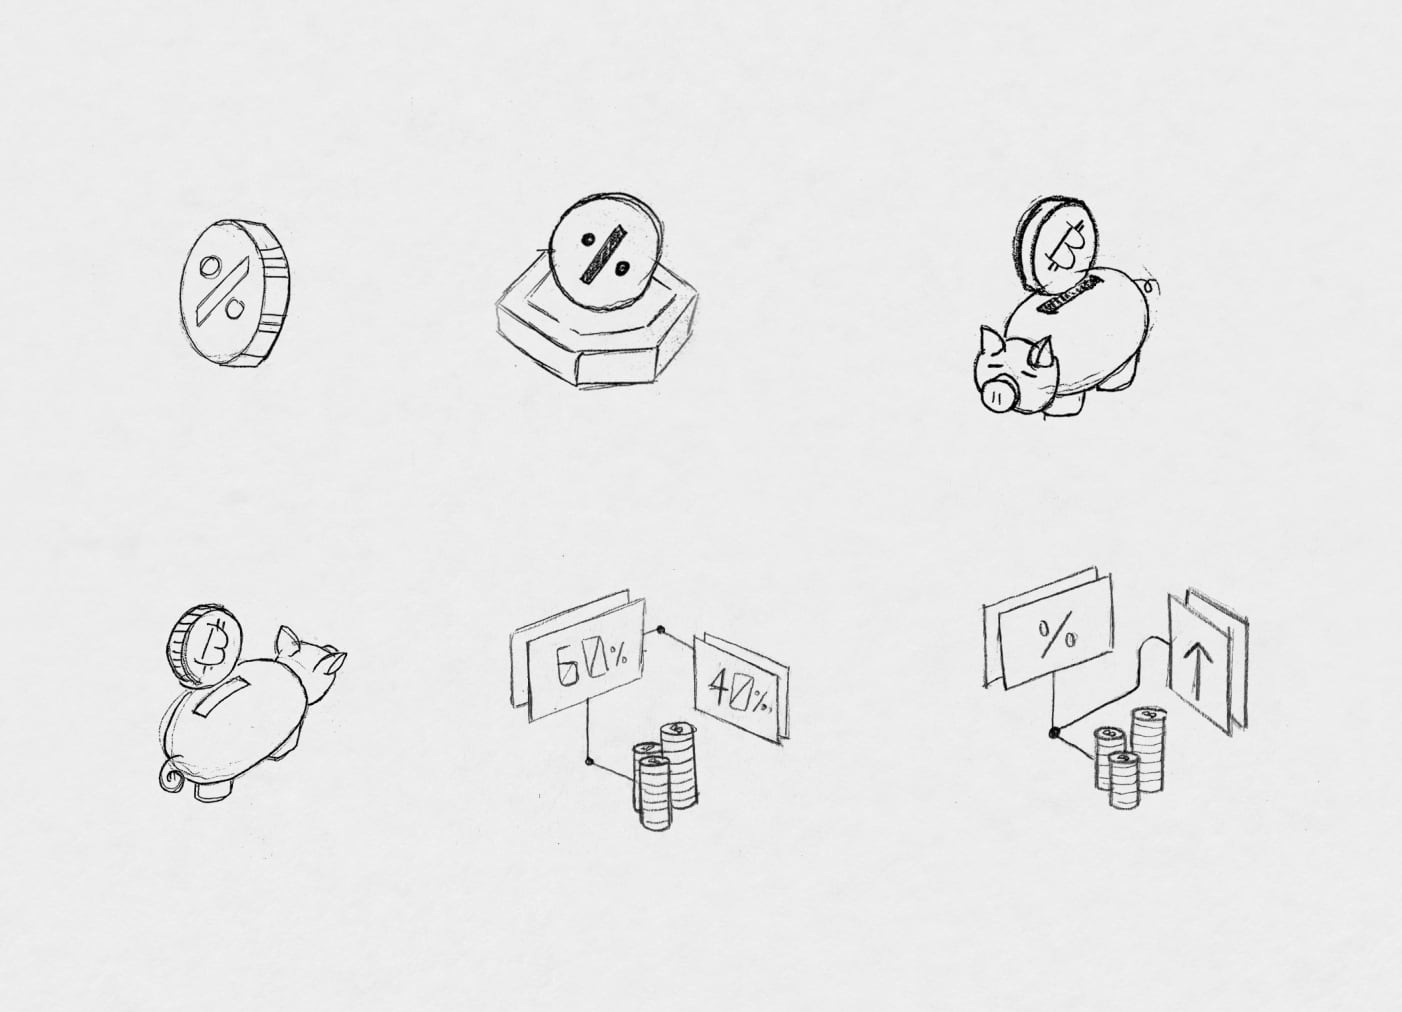 Bitnomial cryptocurrency sketches